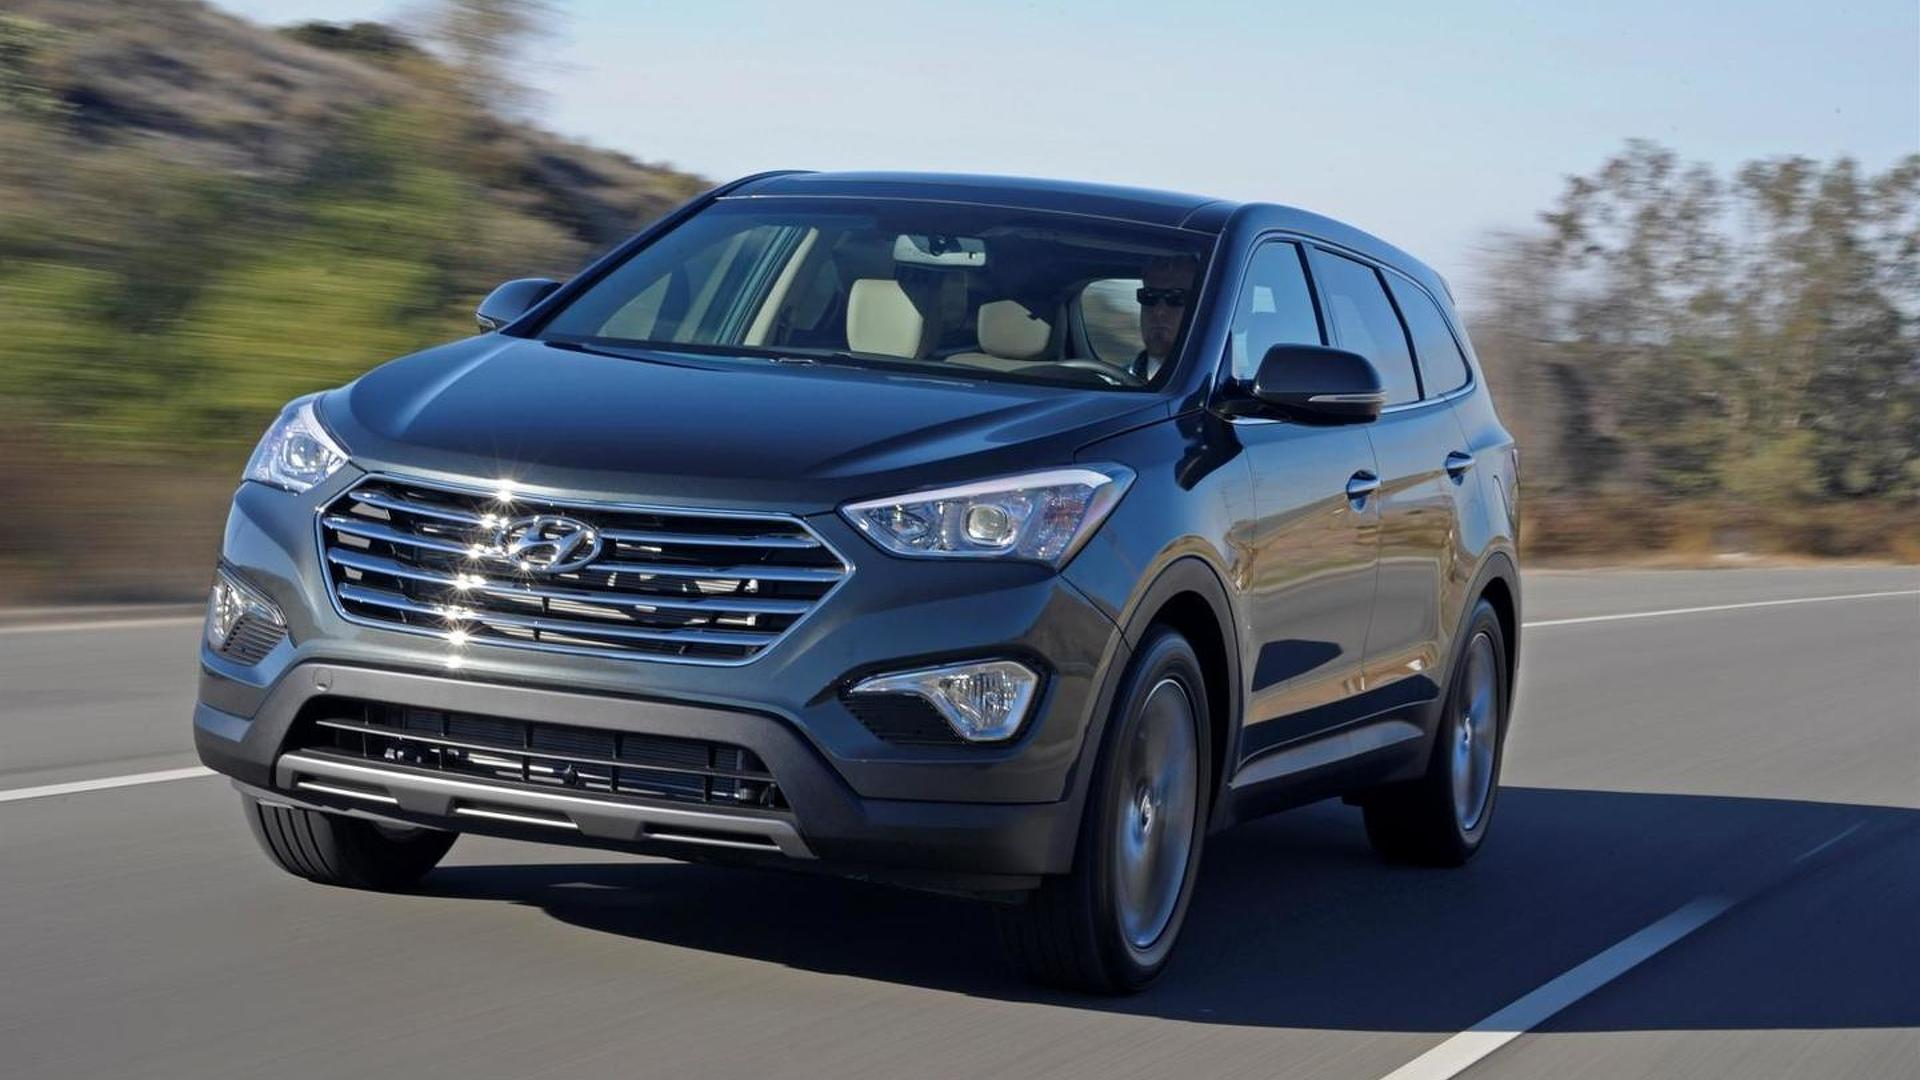 Hyundai considering a luxury crossover to battle the Lexus RX - report